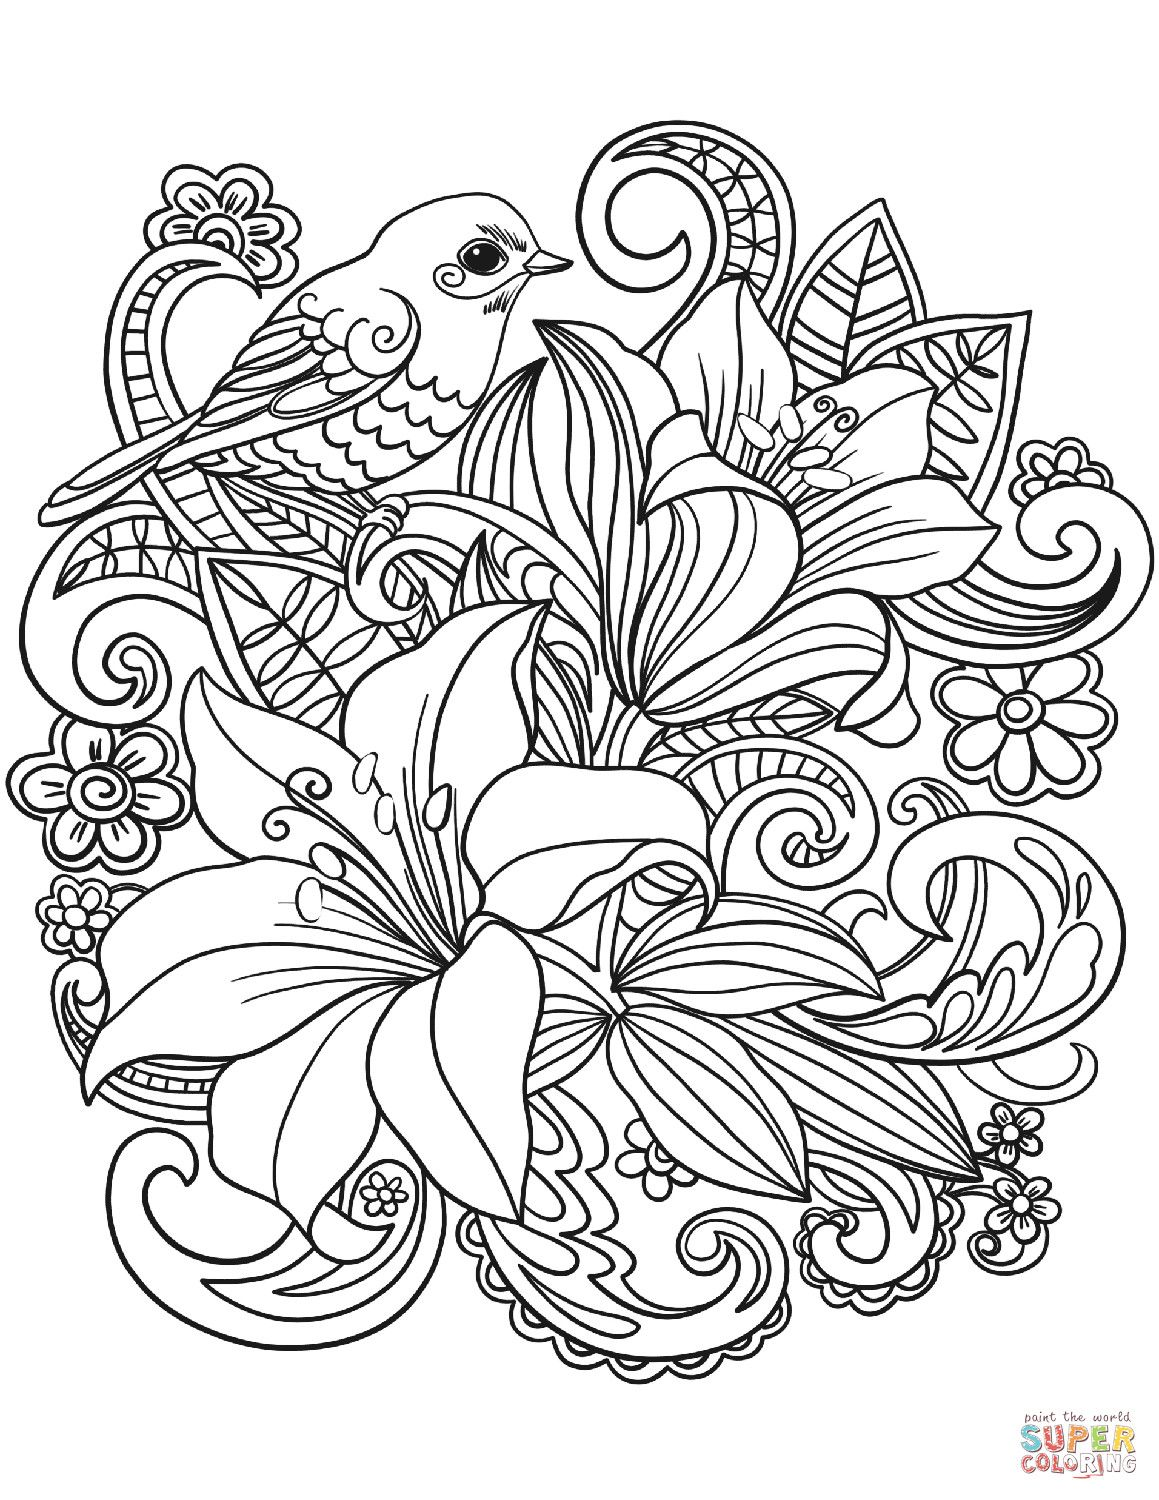 Flower Coloring Pages Pdf Beautiful Skylark And Flowers Coloring Page Printable Flower Coloring Pages Mandala Coloring Pages Flower Coloring Sheets